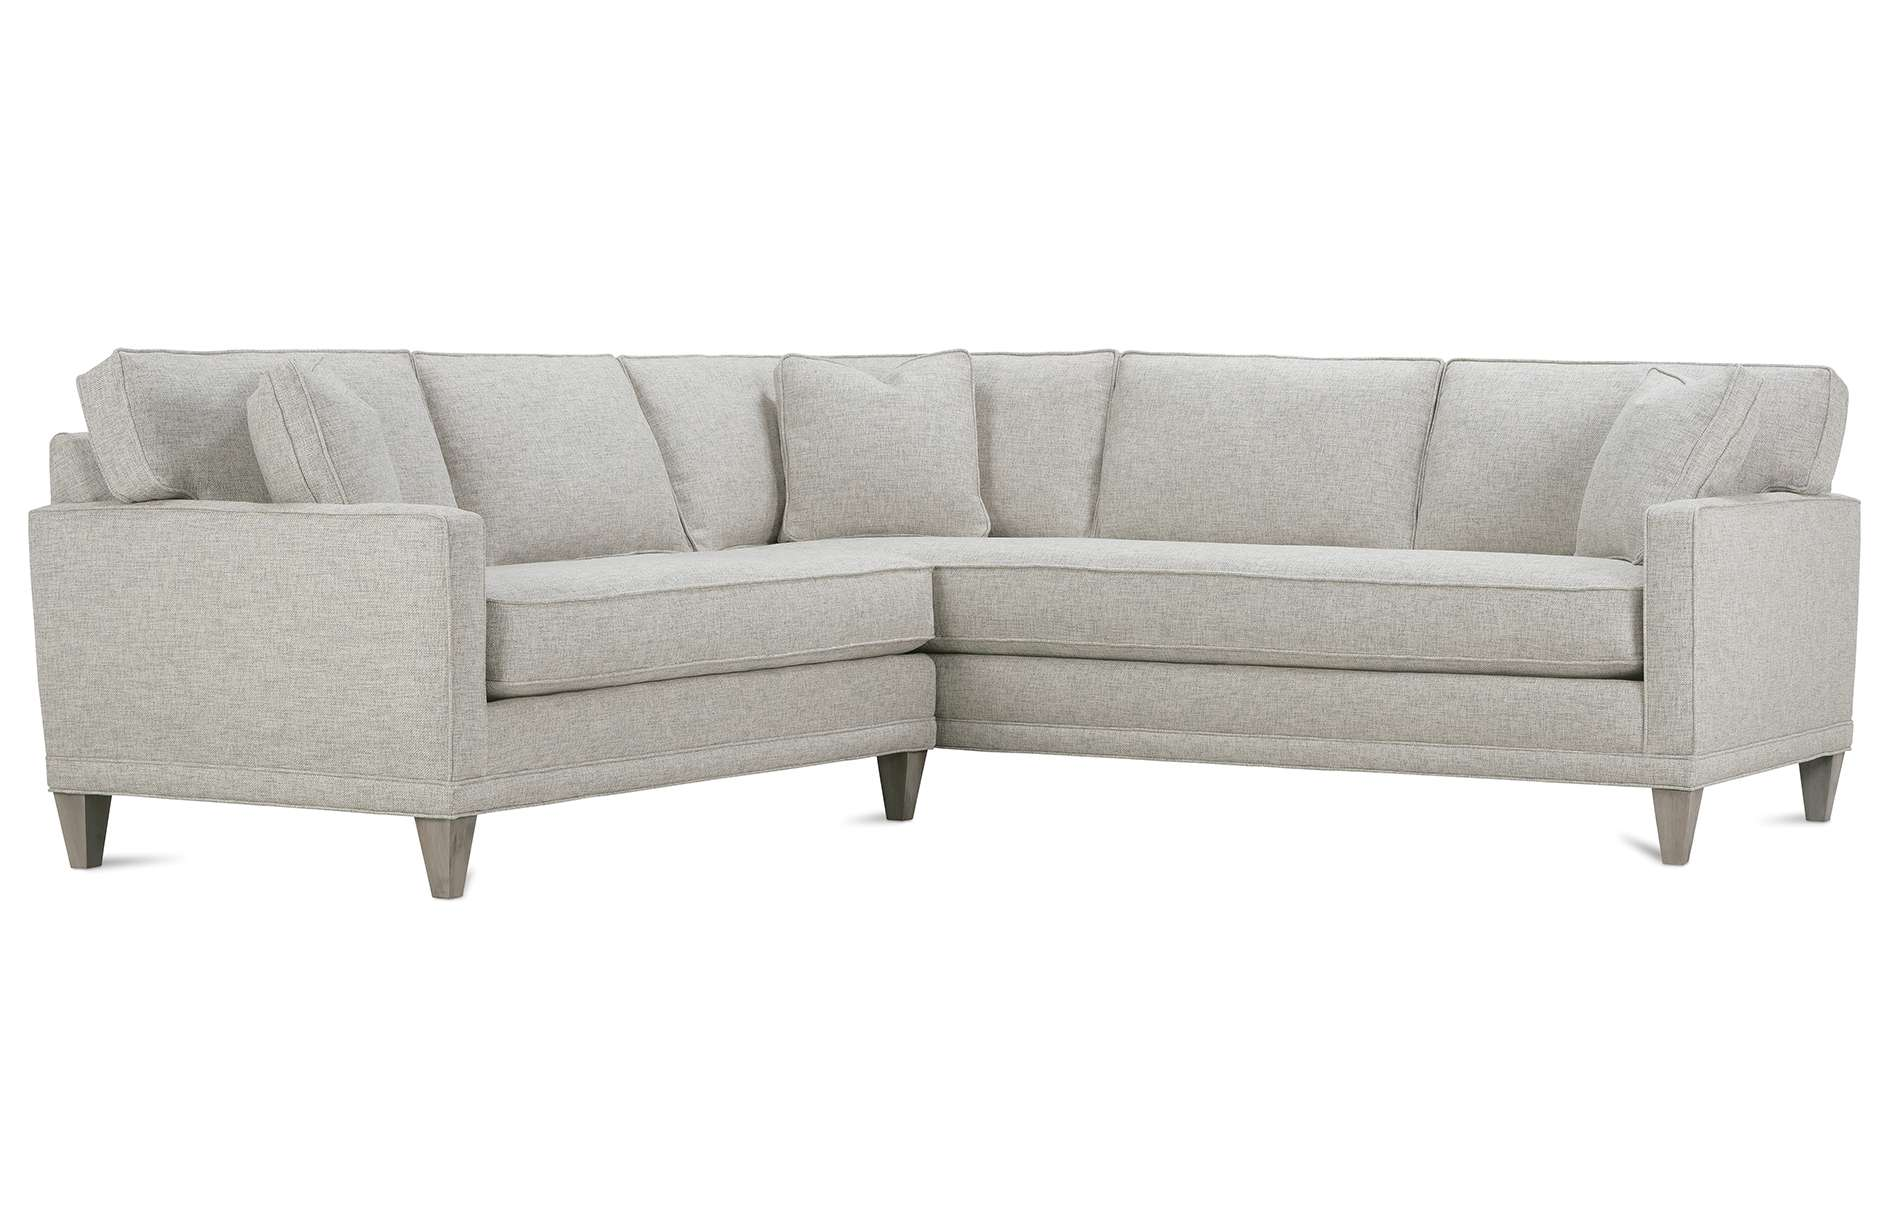 Townsend Bench Sofa Domicile Furniture